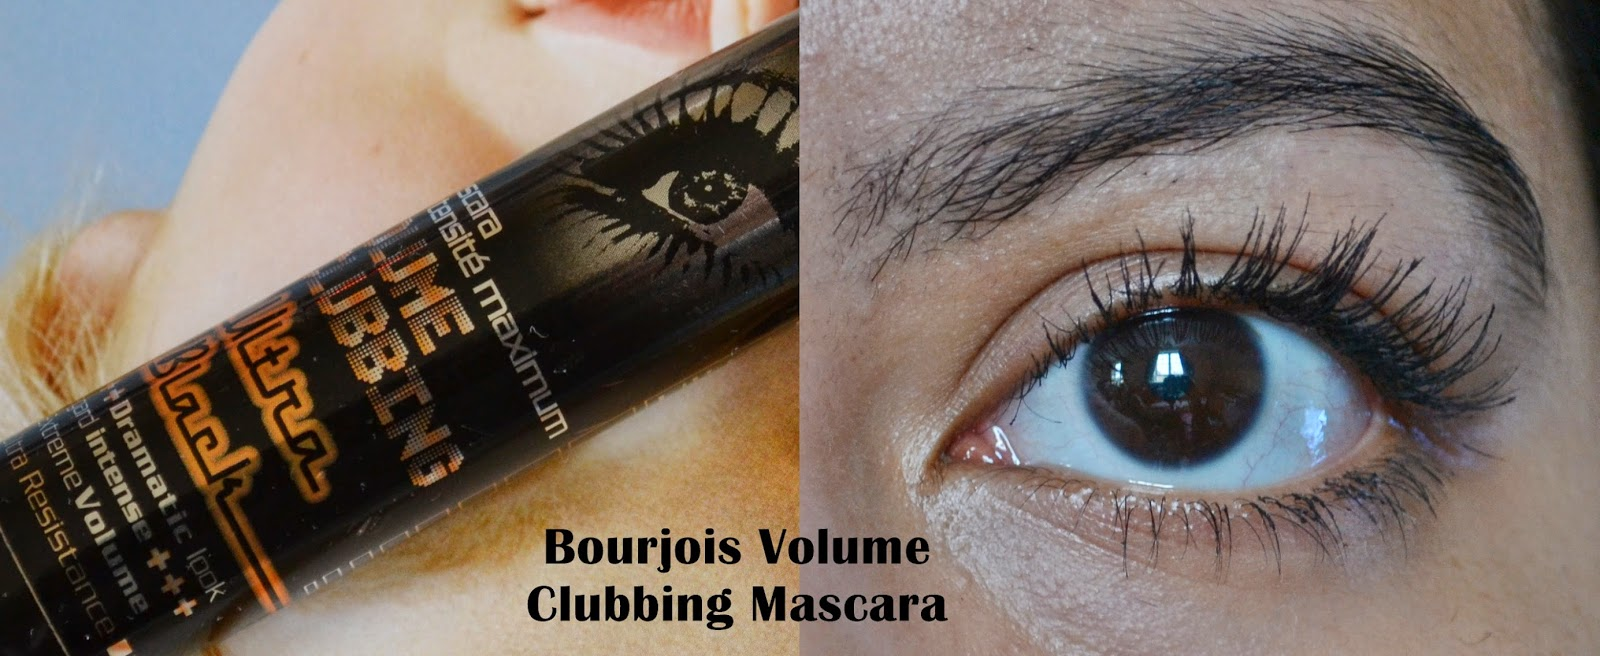 Bourjois Volumising Clubbing Mascara - Beauty by Eff